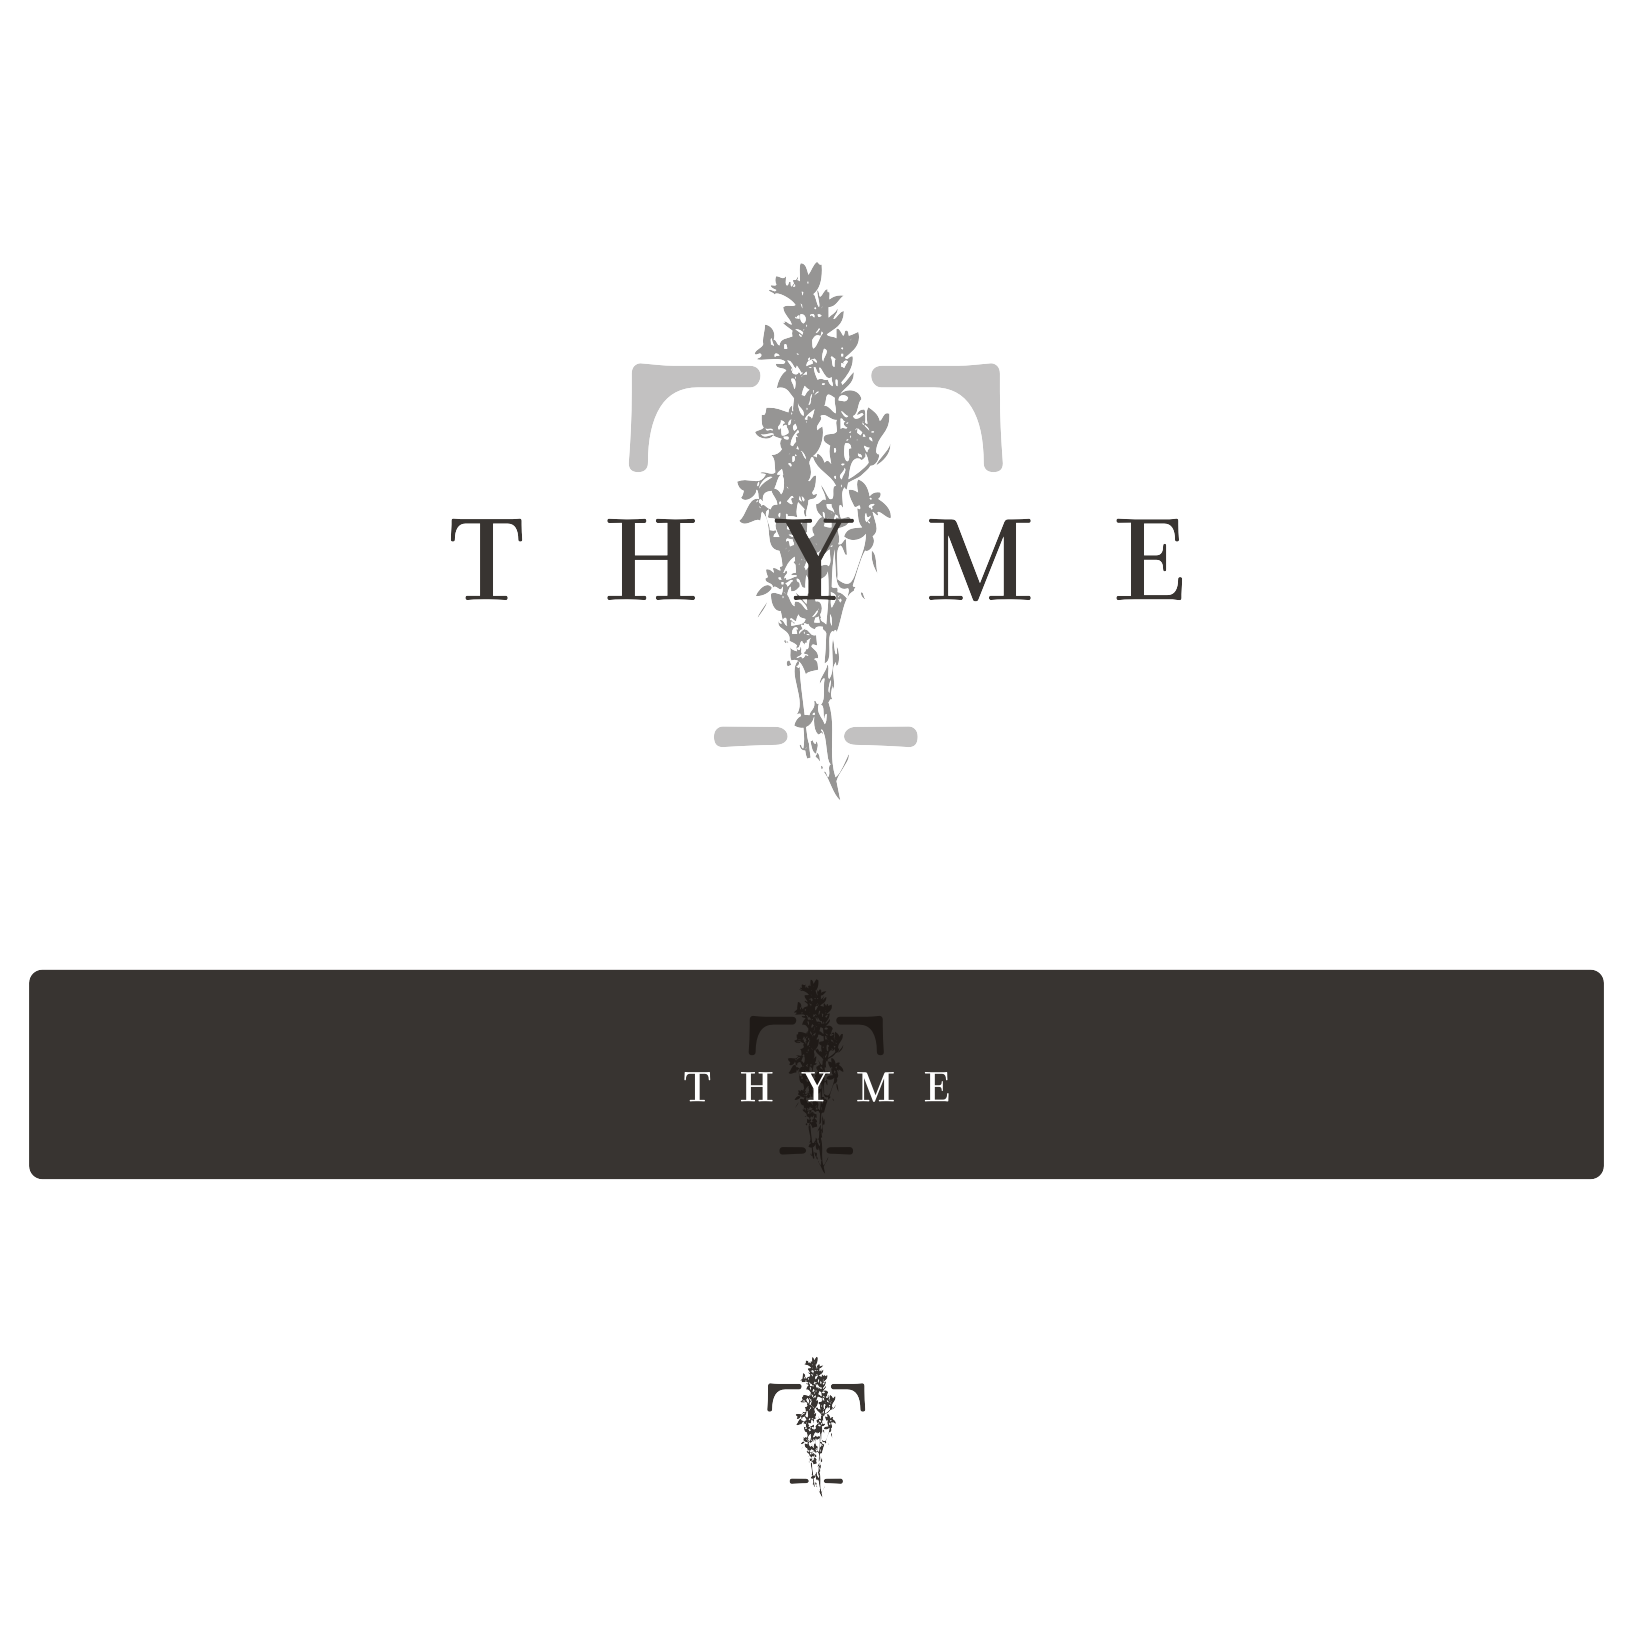 logo for Thyme